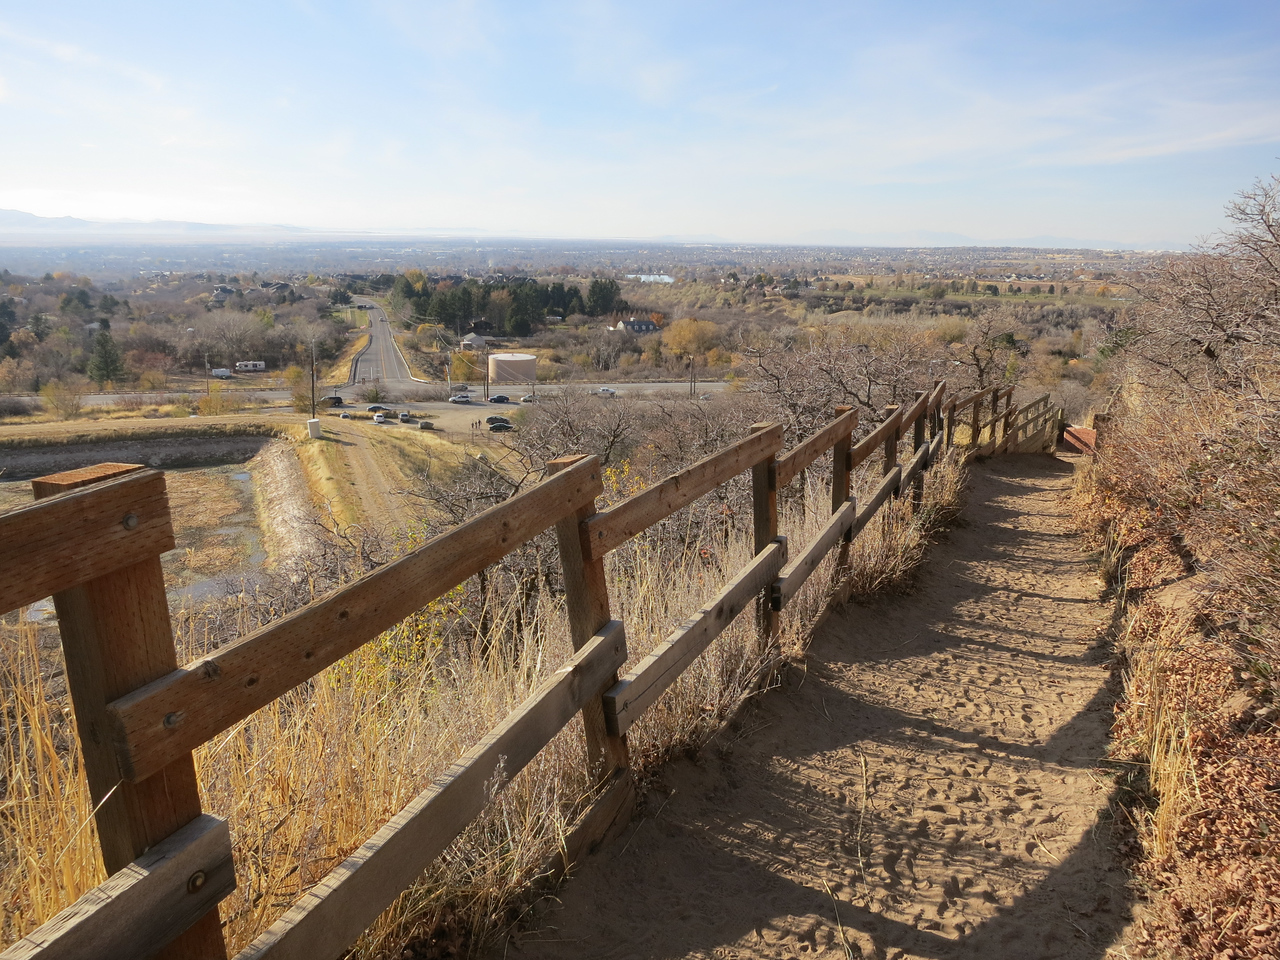 Sandy switchbacks lined by fence and bushy oaks climb fast to views of Layton.